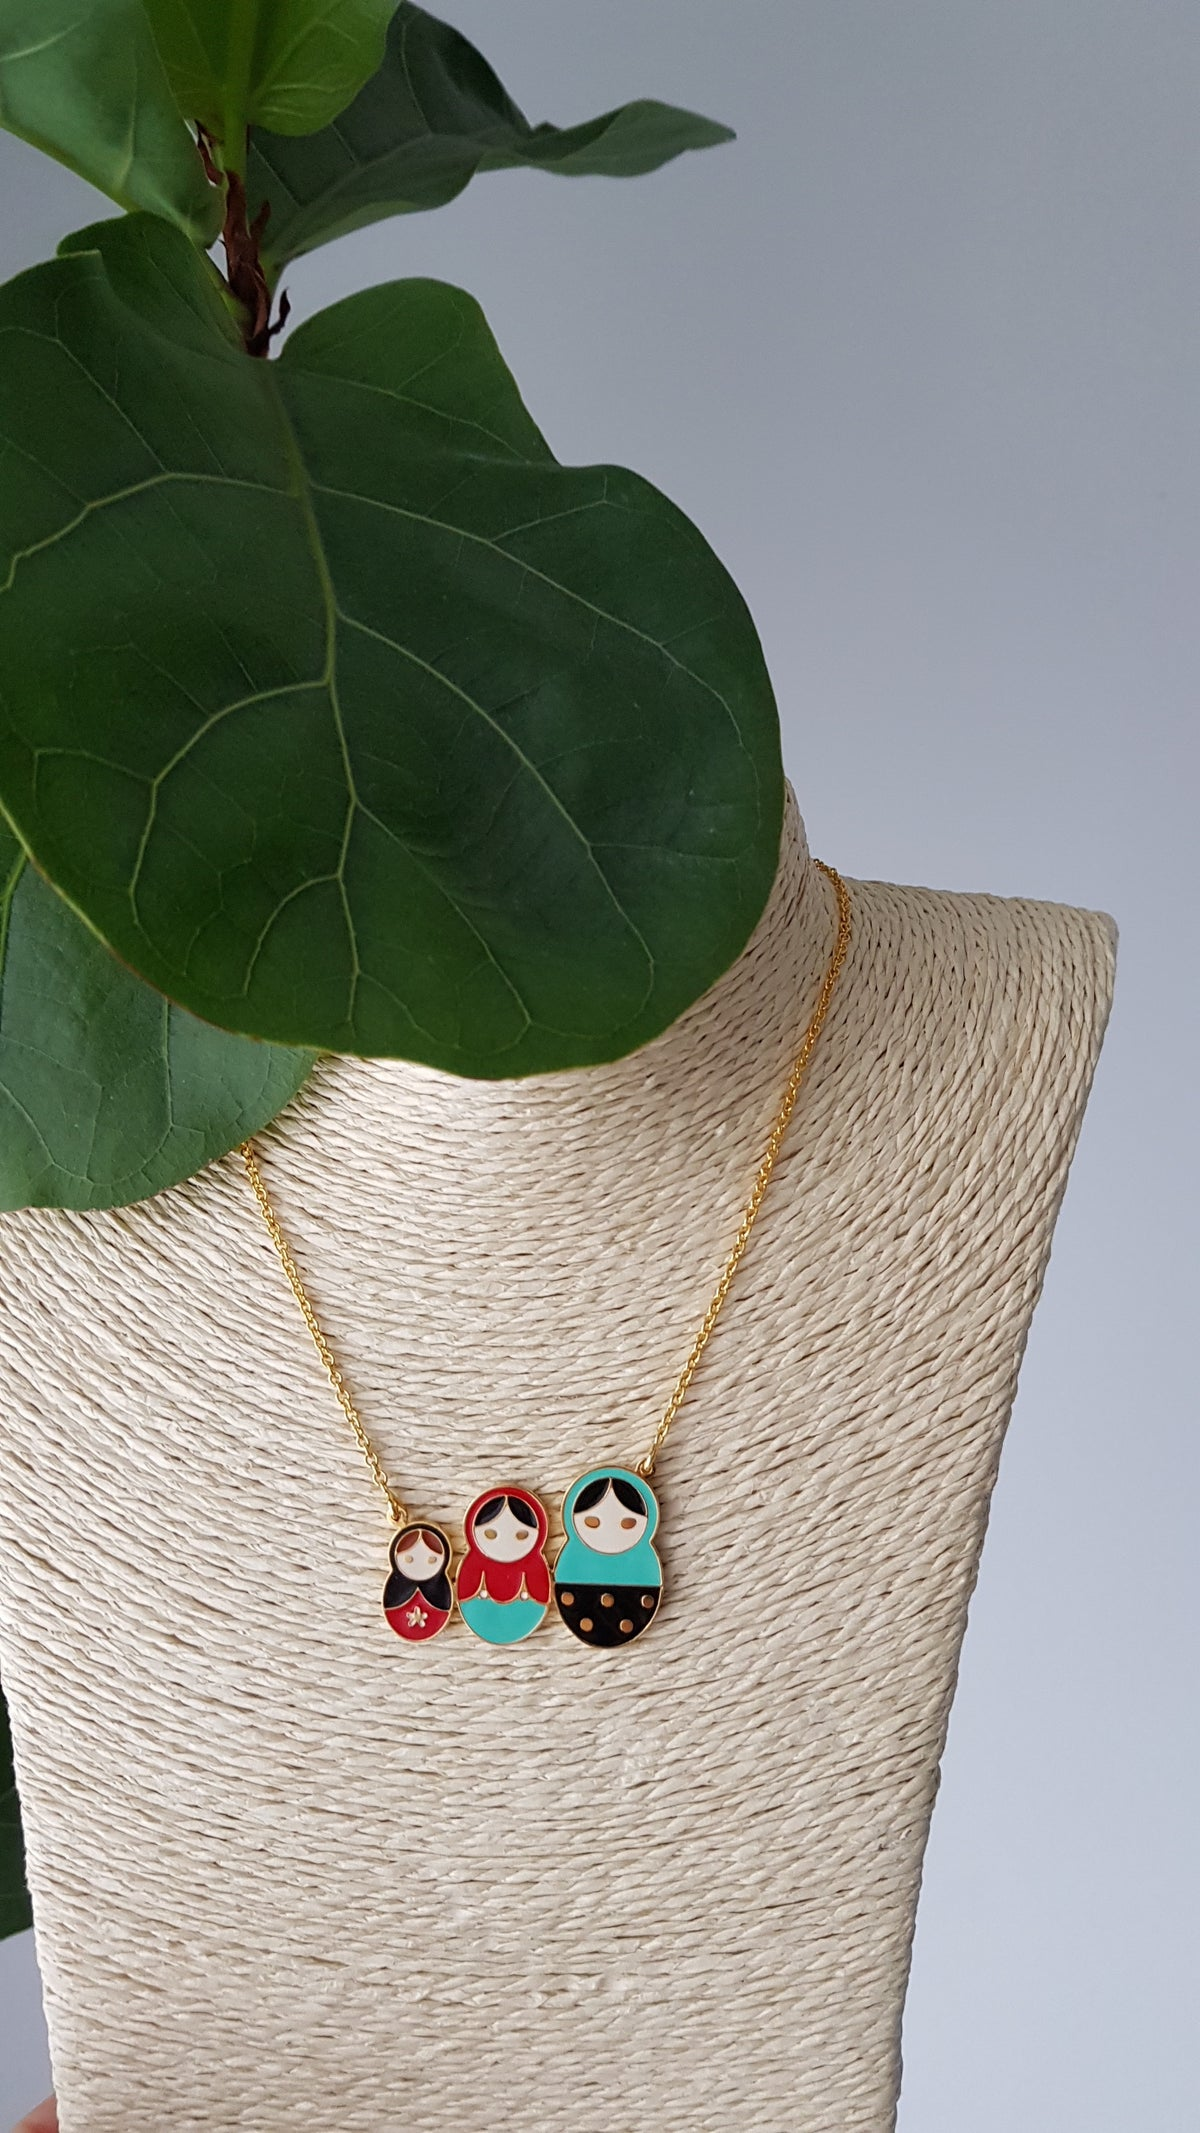 Yolanda Russian Dolls Necklace (Green+Black+Red)